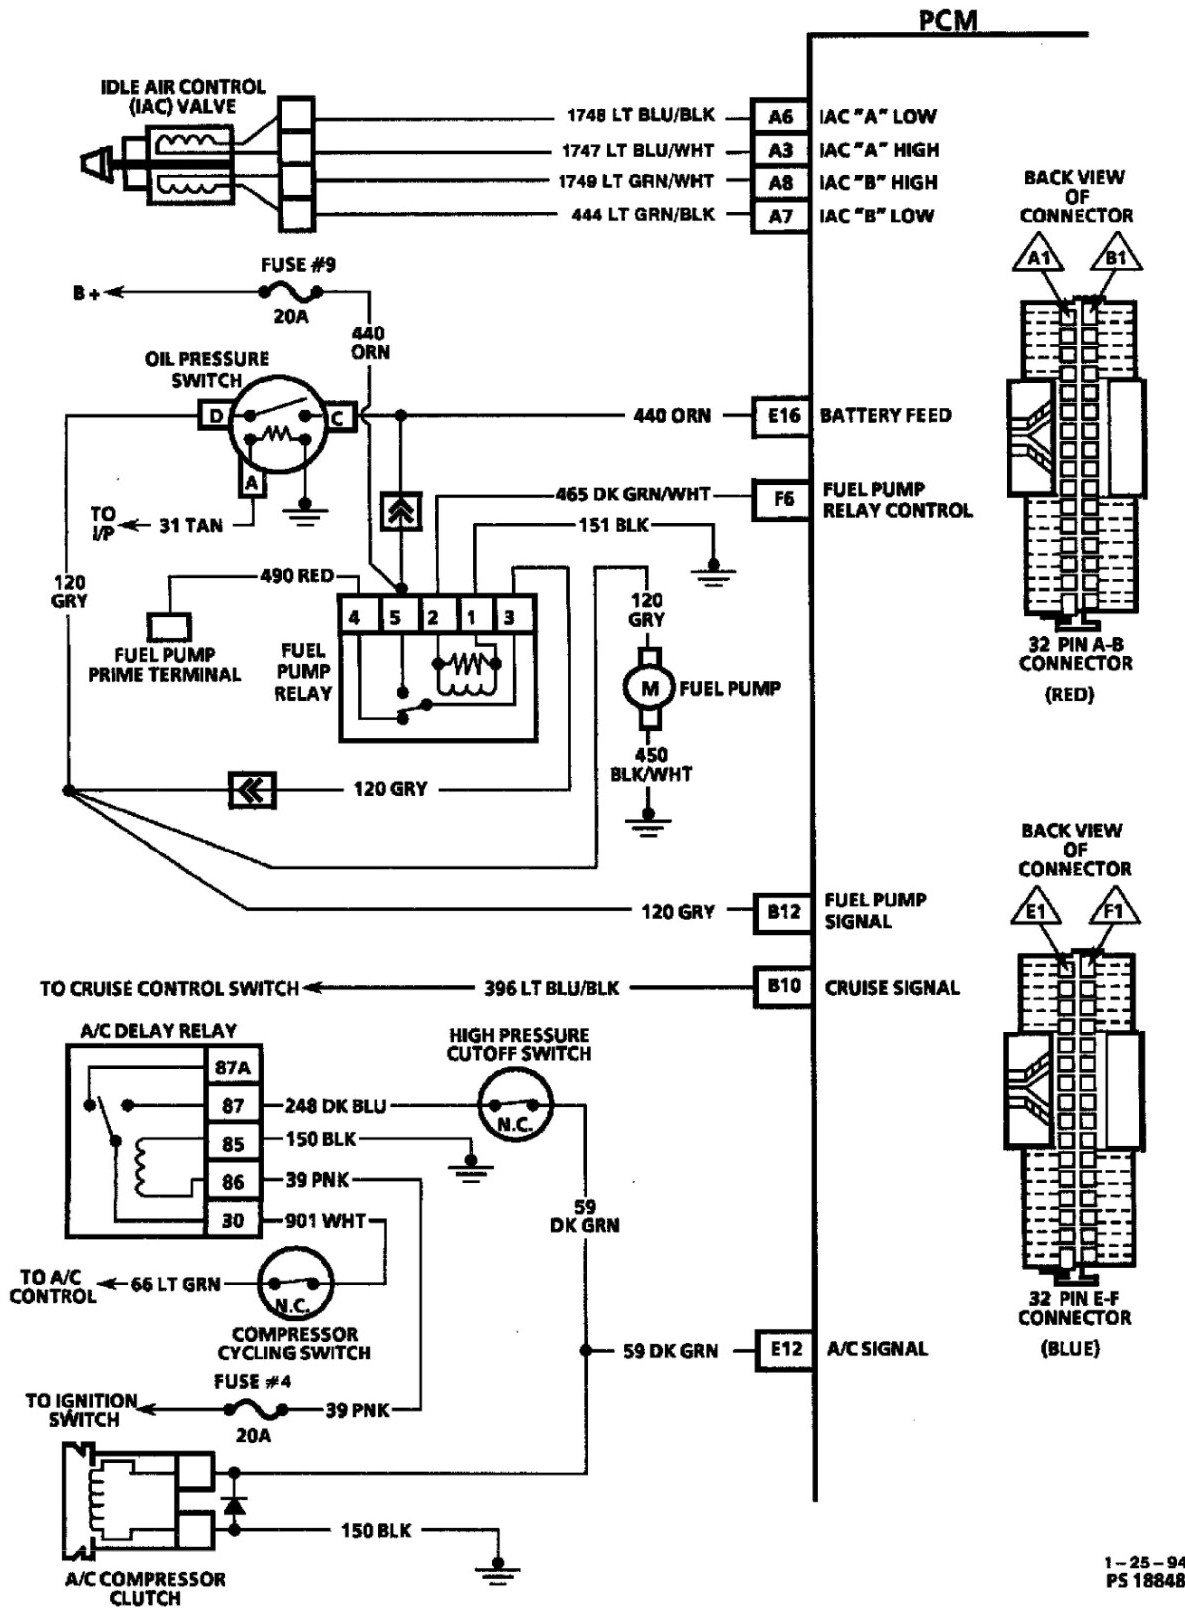 2010 08 26_024610_pump_0000 95 blazer wiring diagram chevy wiring diagram \u2022 free wiring 1999 s10 fuel pump wiring diagram at gsmx.co